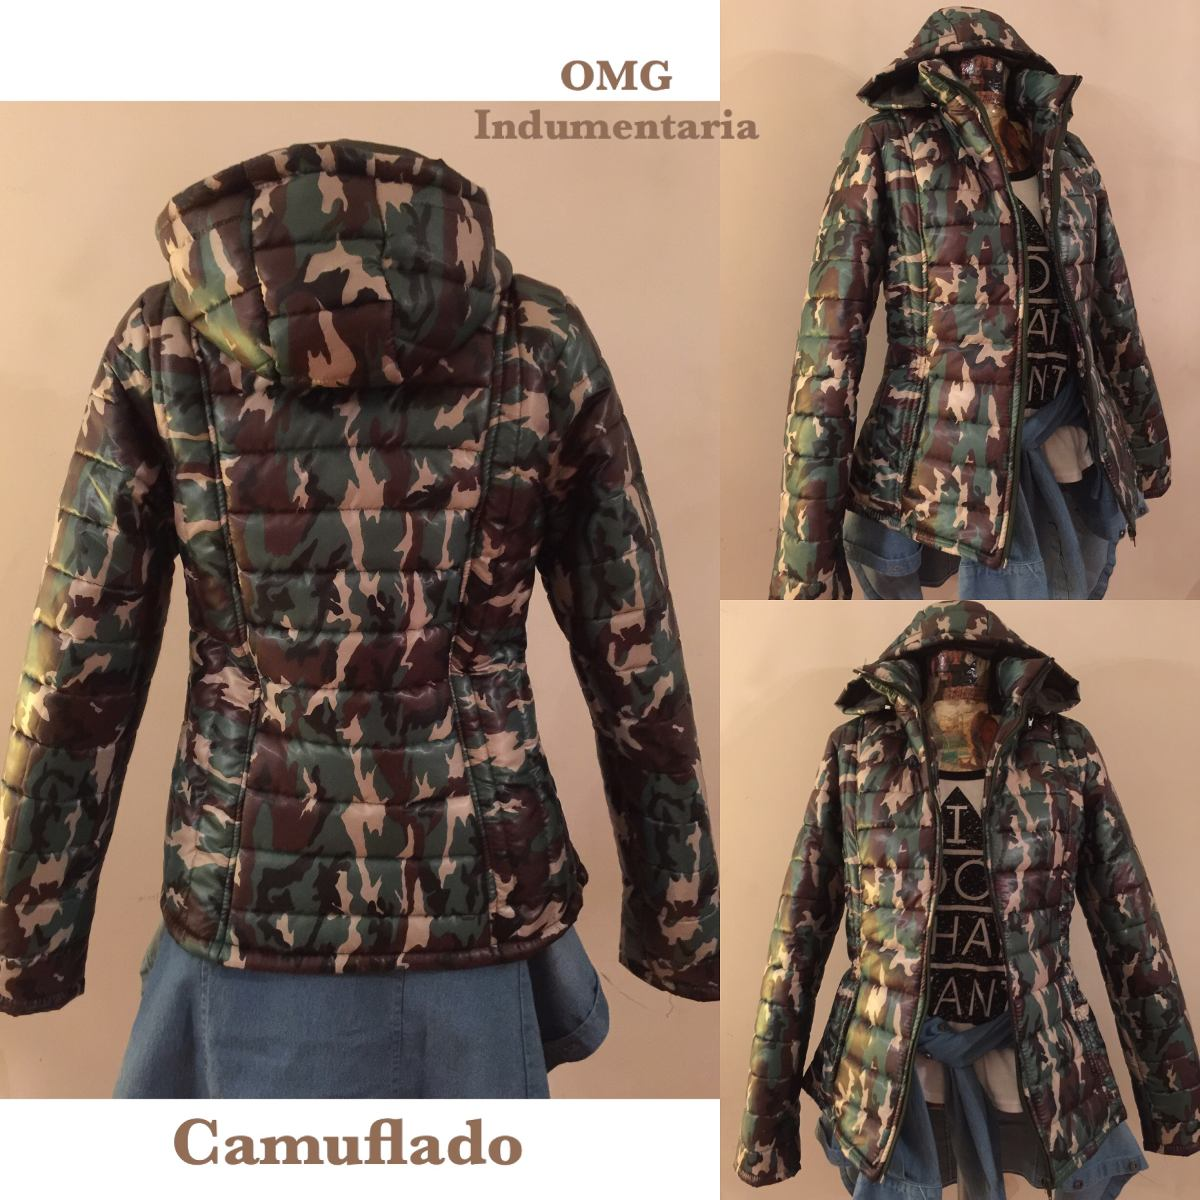 86d9b53f1809 campera-inflable-abrigo-mujer -camuflada-impermeable-capucha-D NQ NP 125405-MLA20865751069 082016-F.jpg